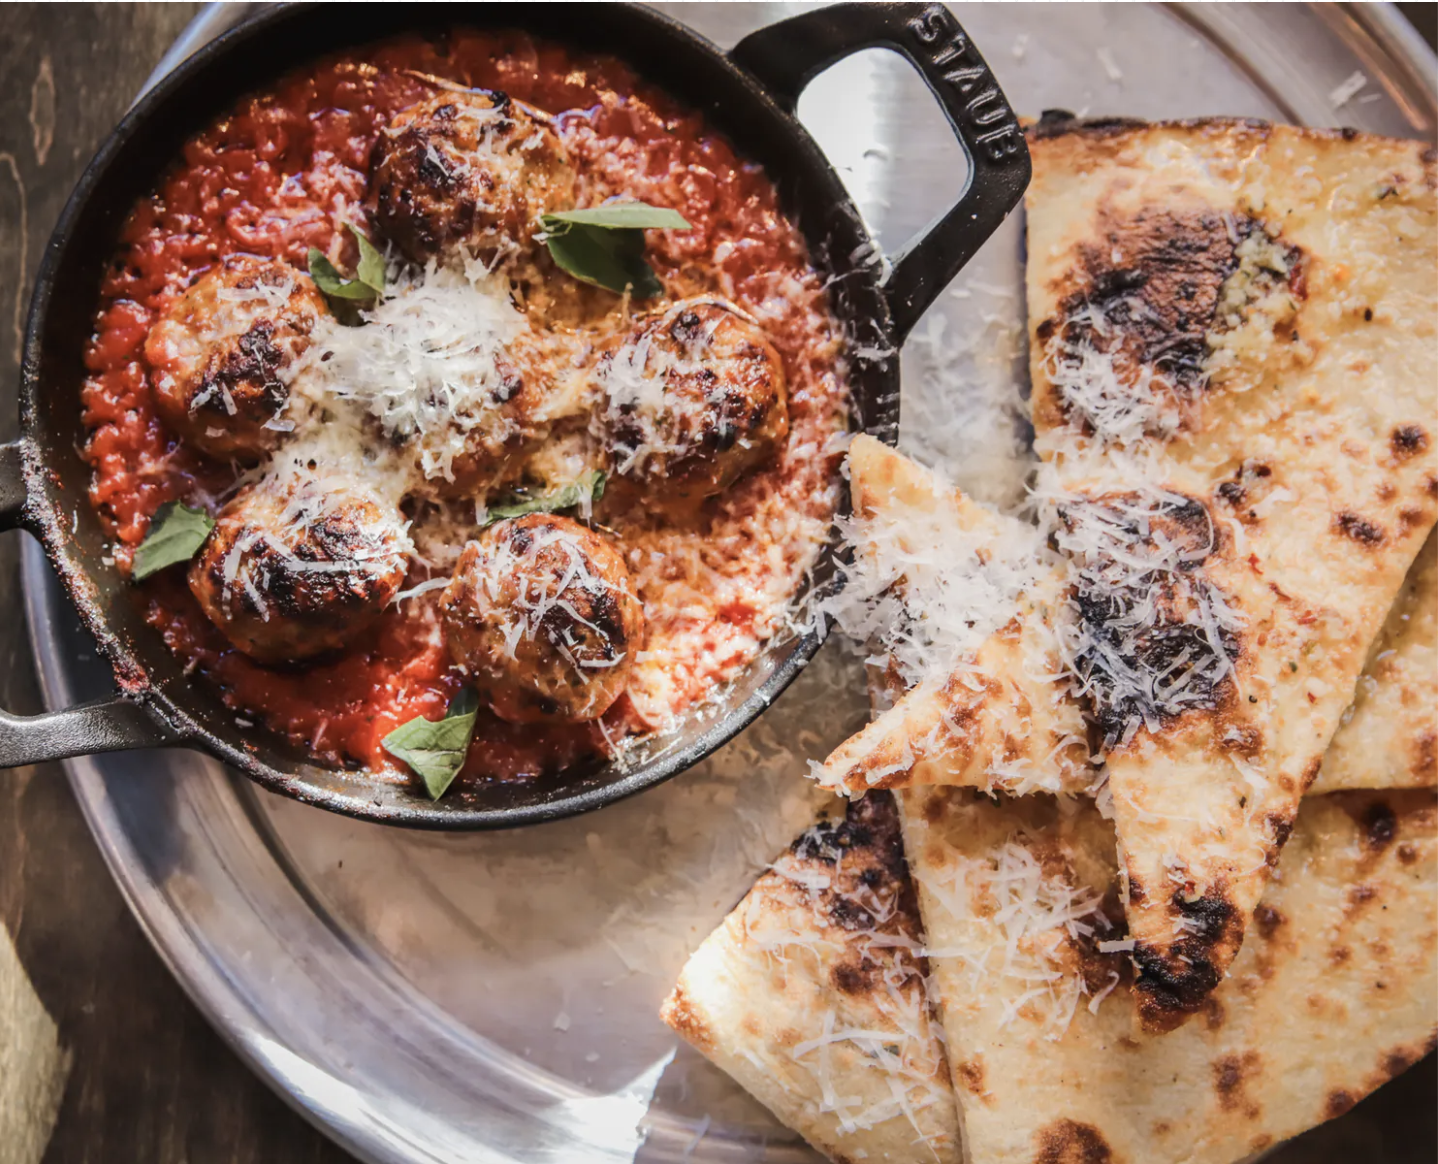 A cast-iron pot holds meatballs and tomato sauce beside grilled triangles of flatbread.